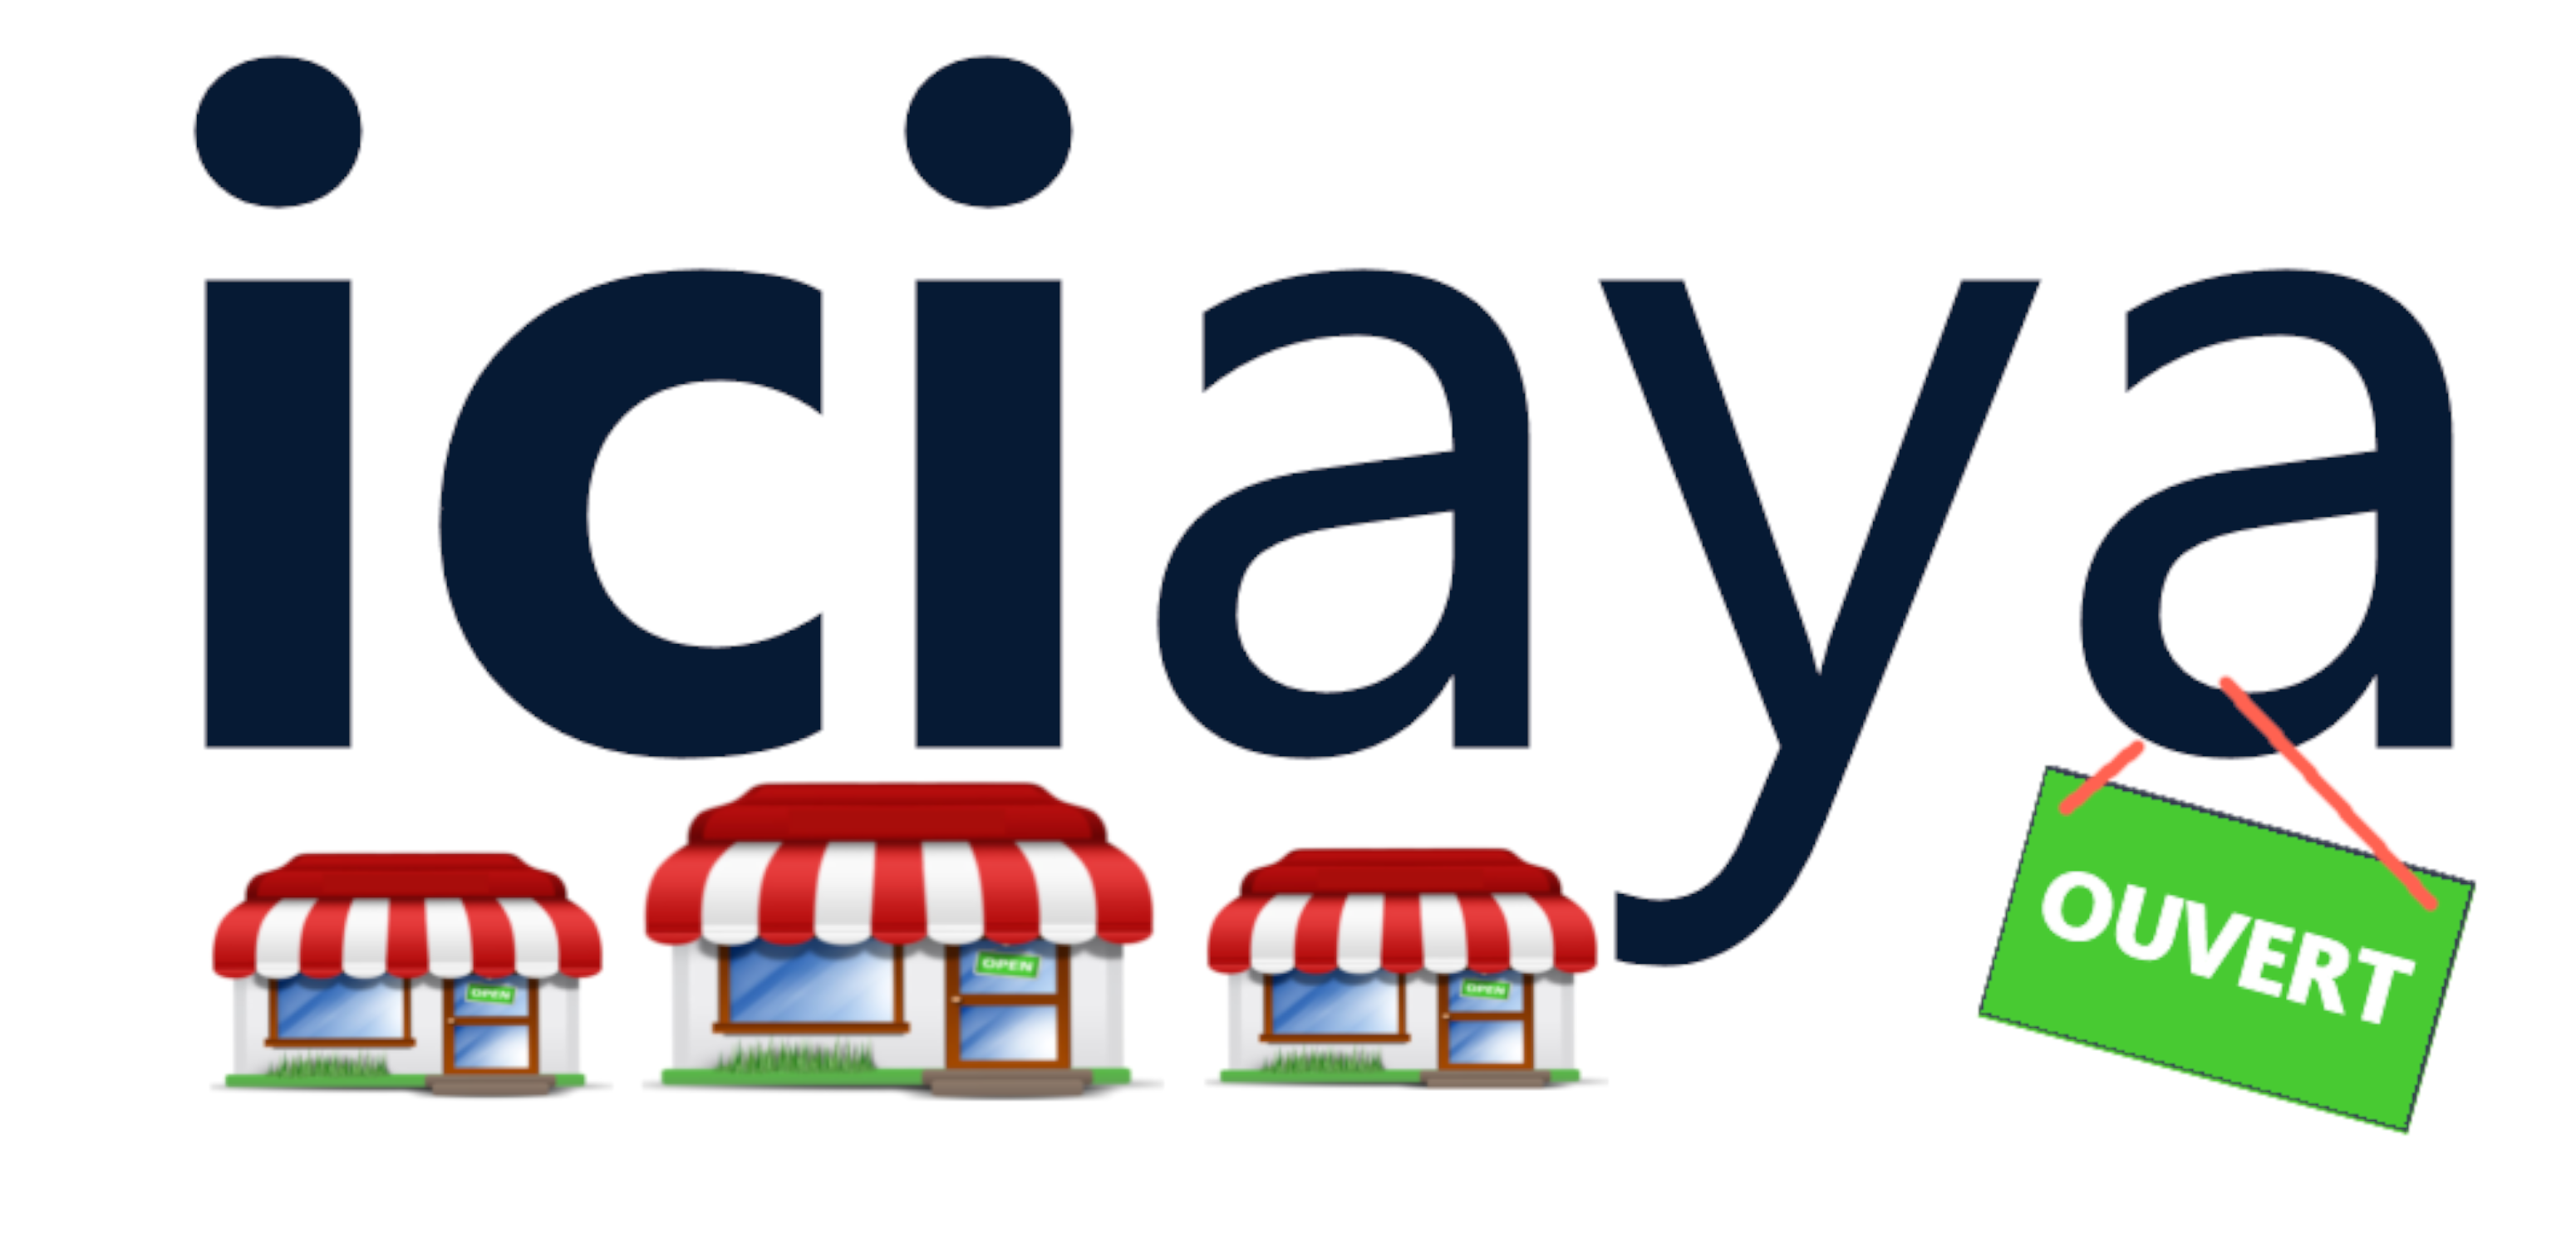 Iciaya blog